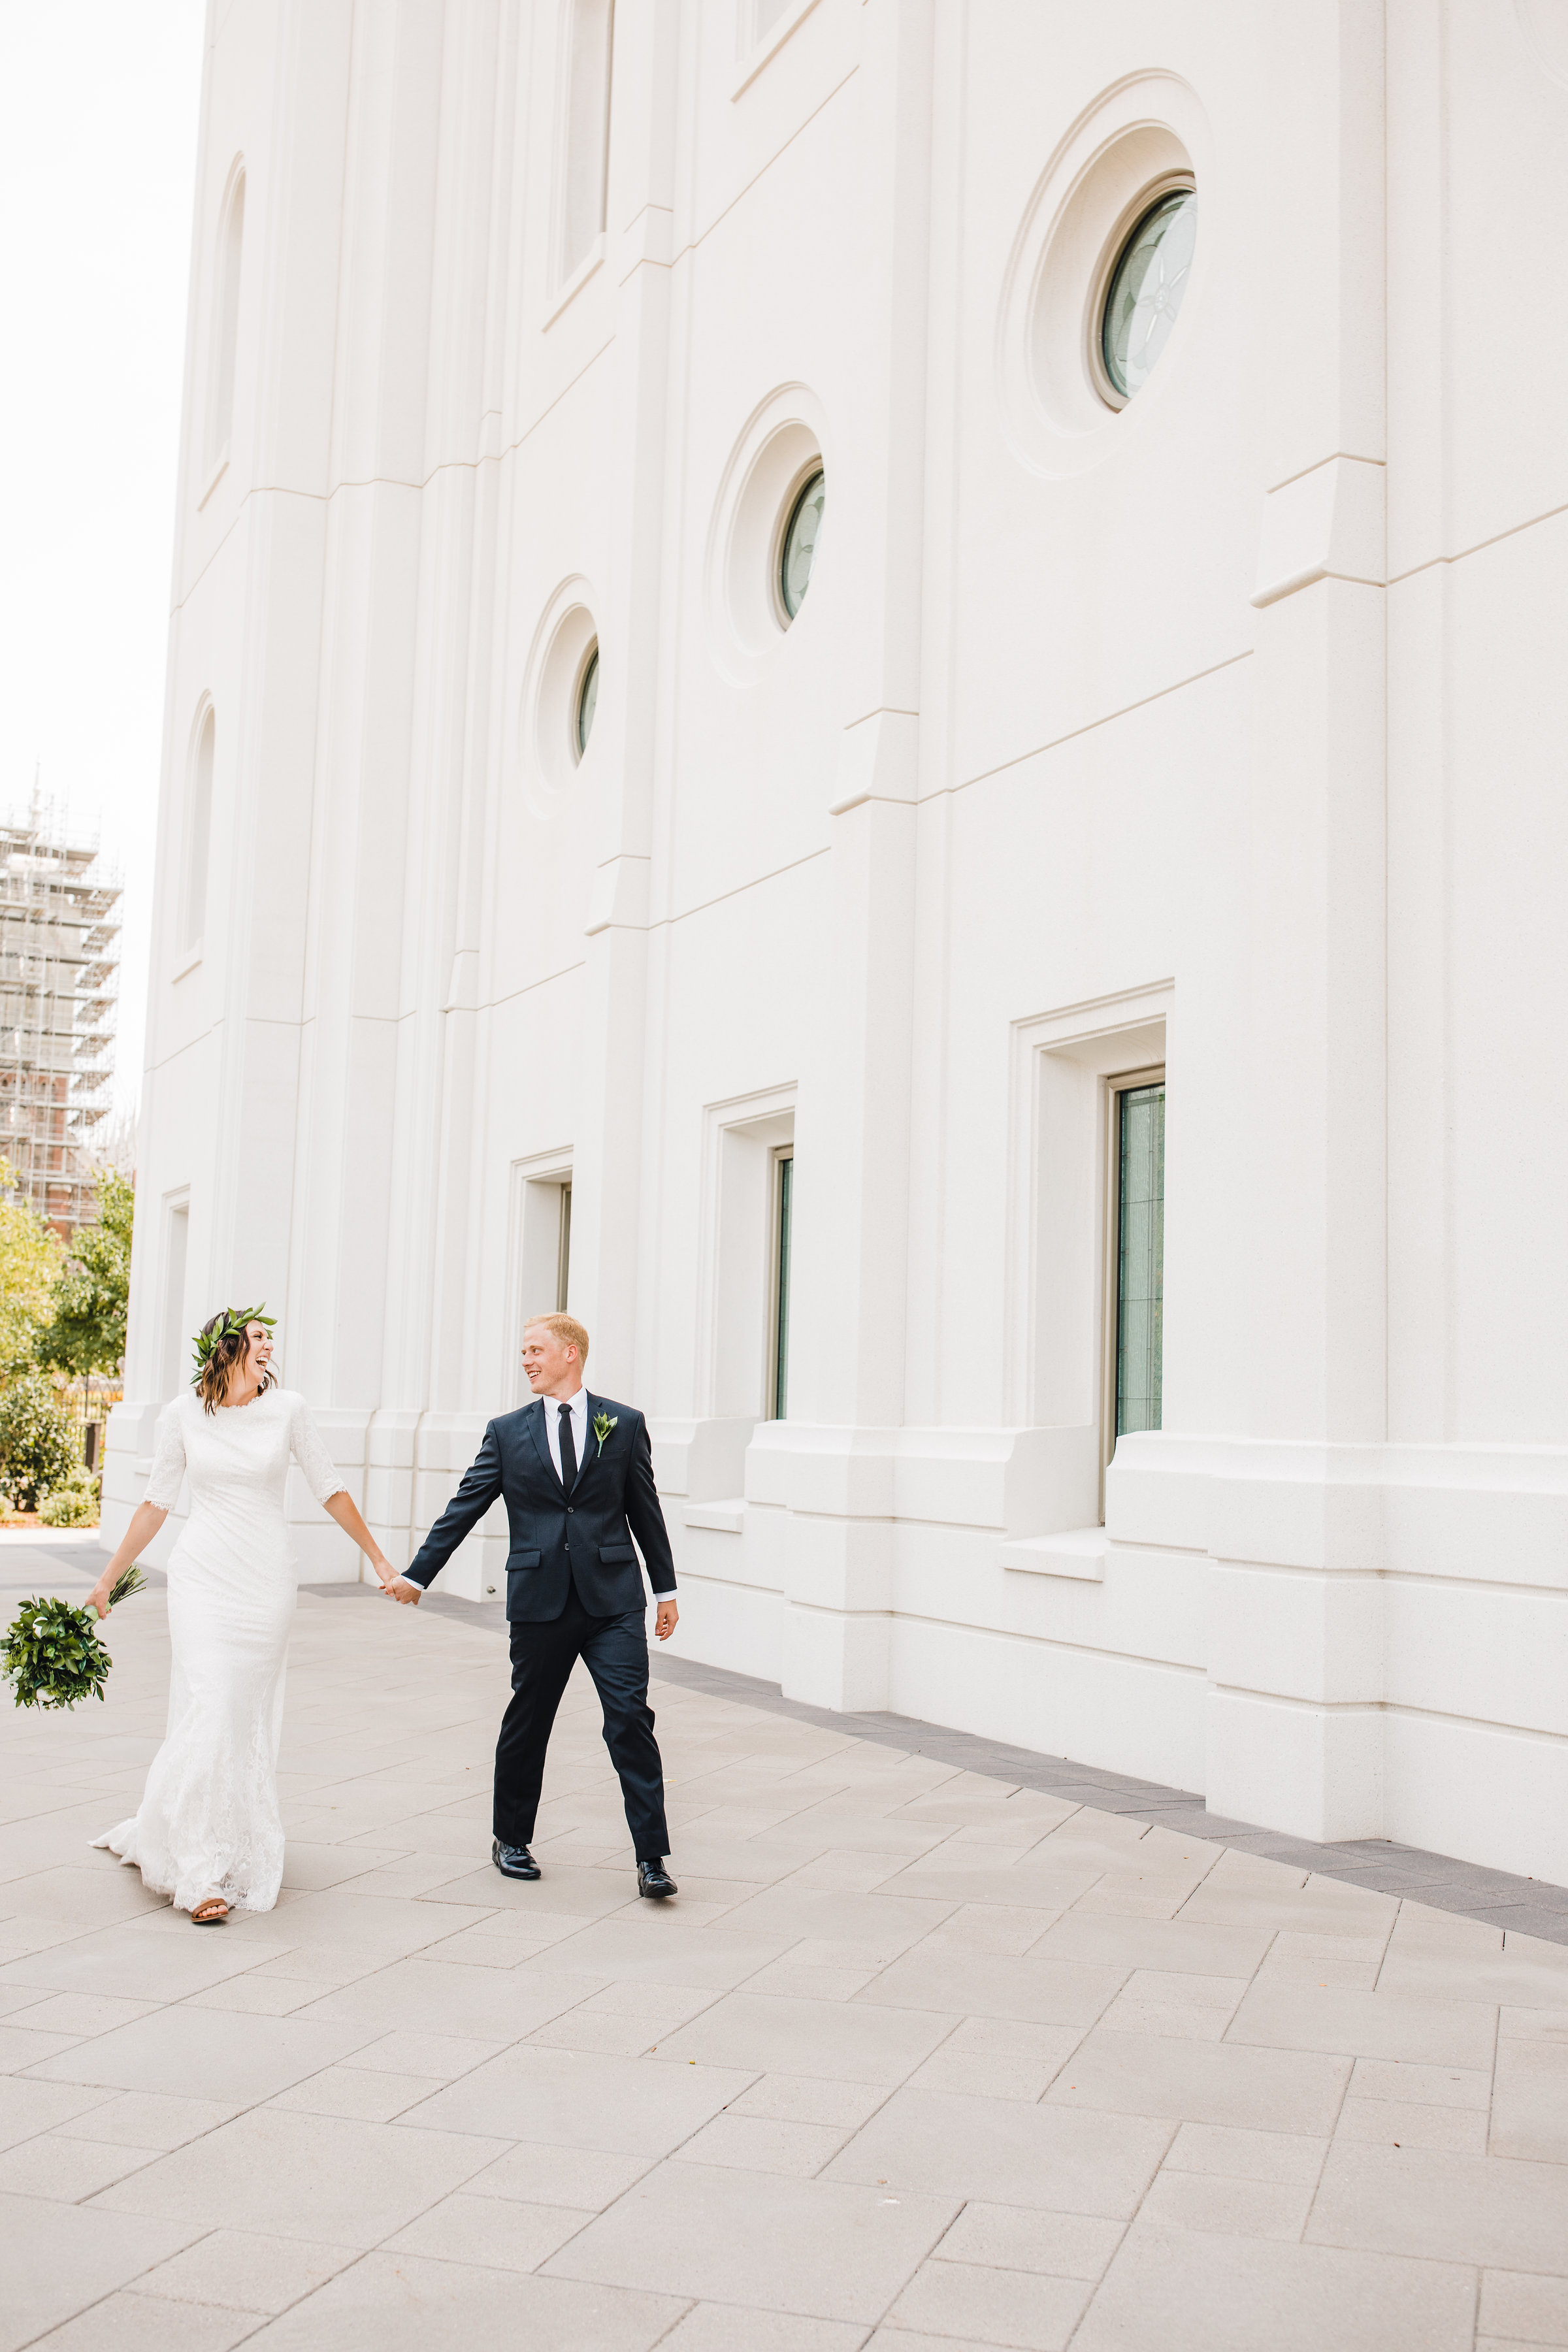 professional wedding photographer in brigham city holding hands lds temple wedding exit walking